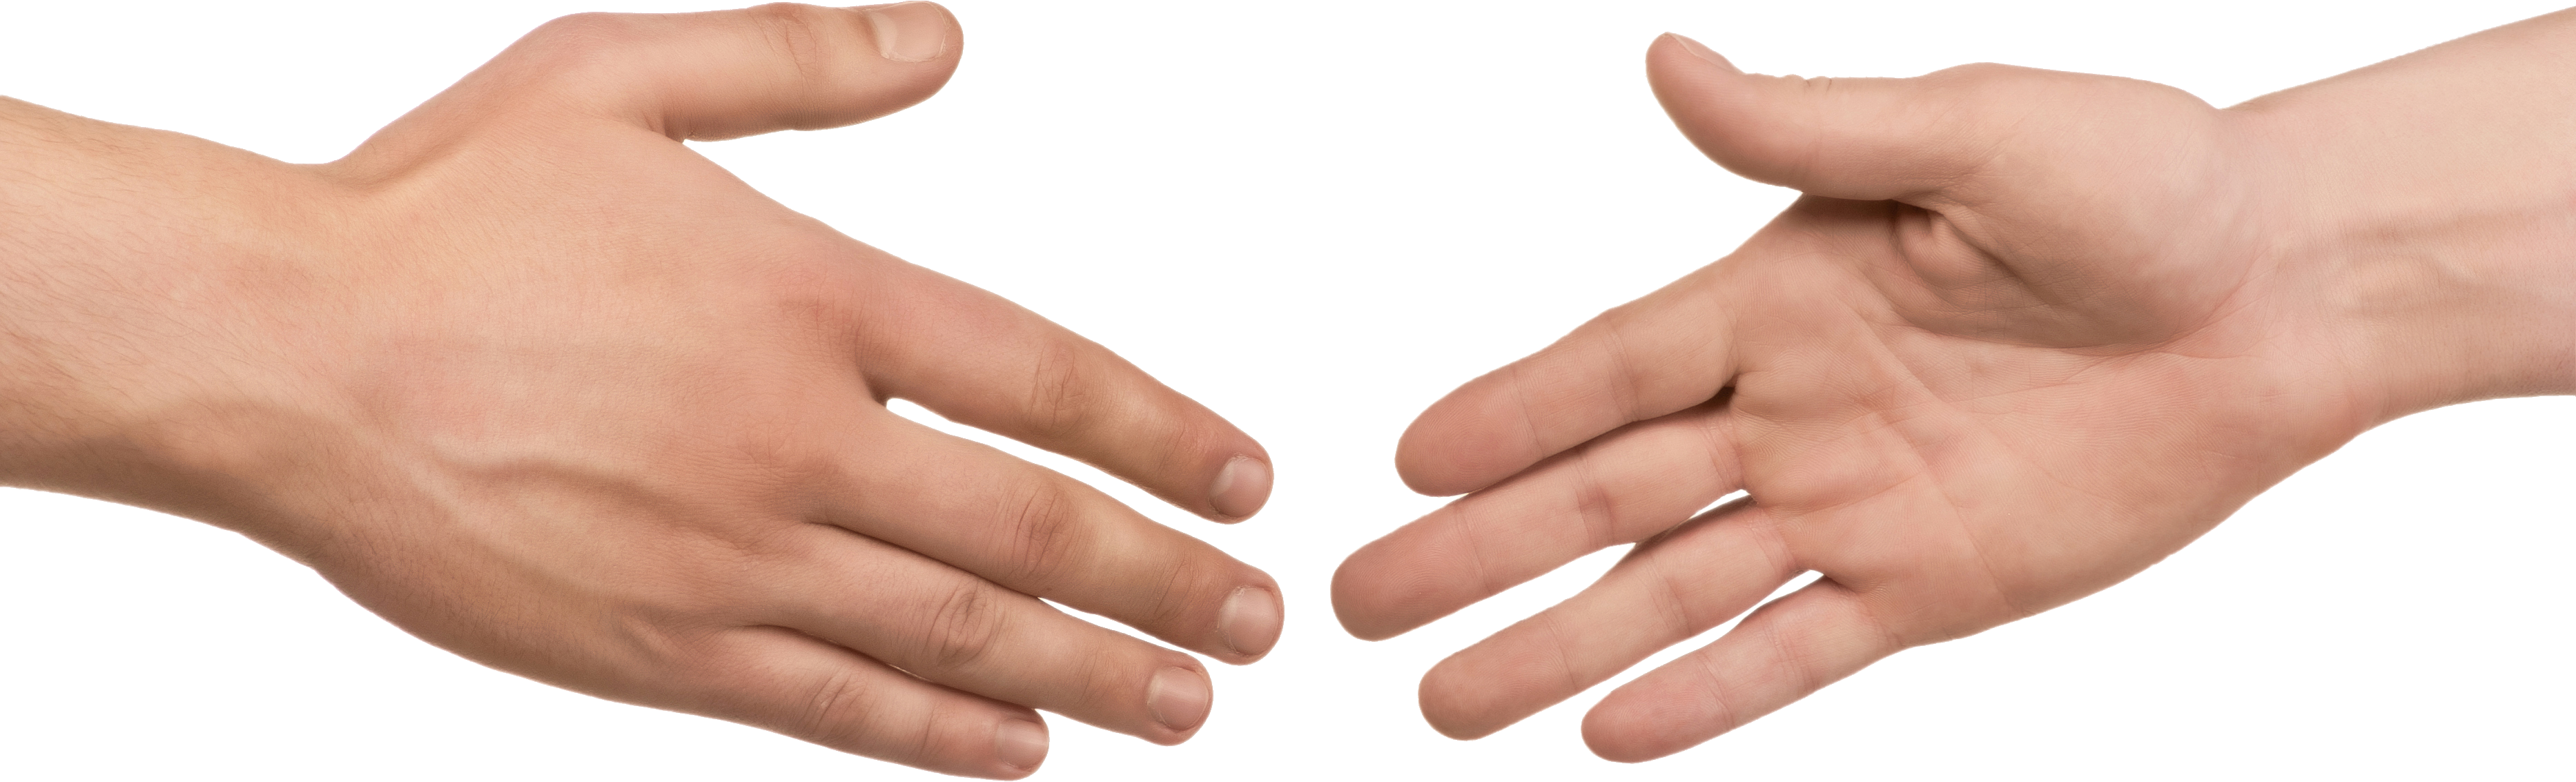 Hands Png Free Images Pictures Download 403683 Png Images Pngio Download transparent hand shake png for free on pngkey.com. images pictures download 403683 png